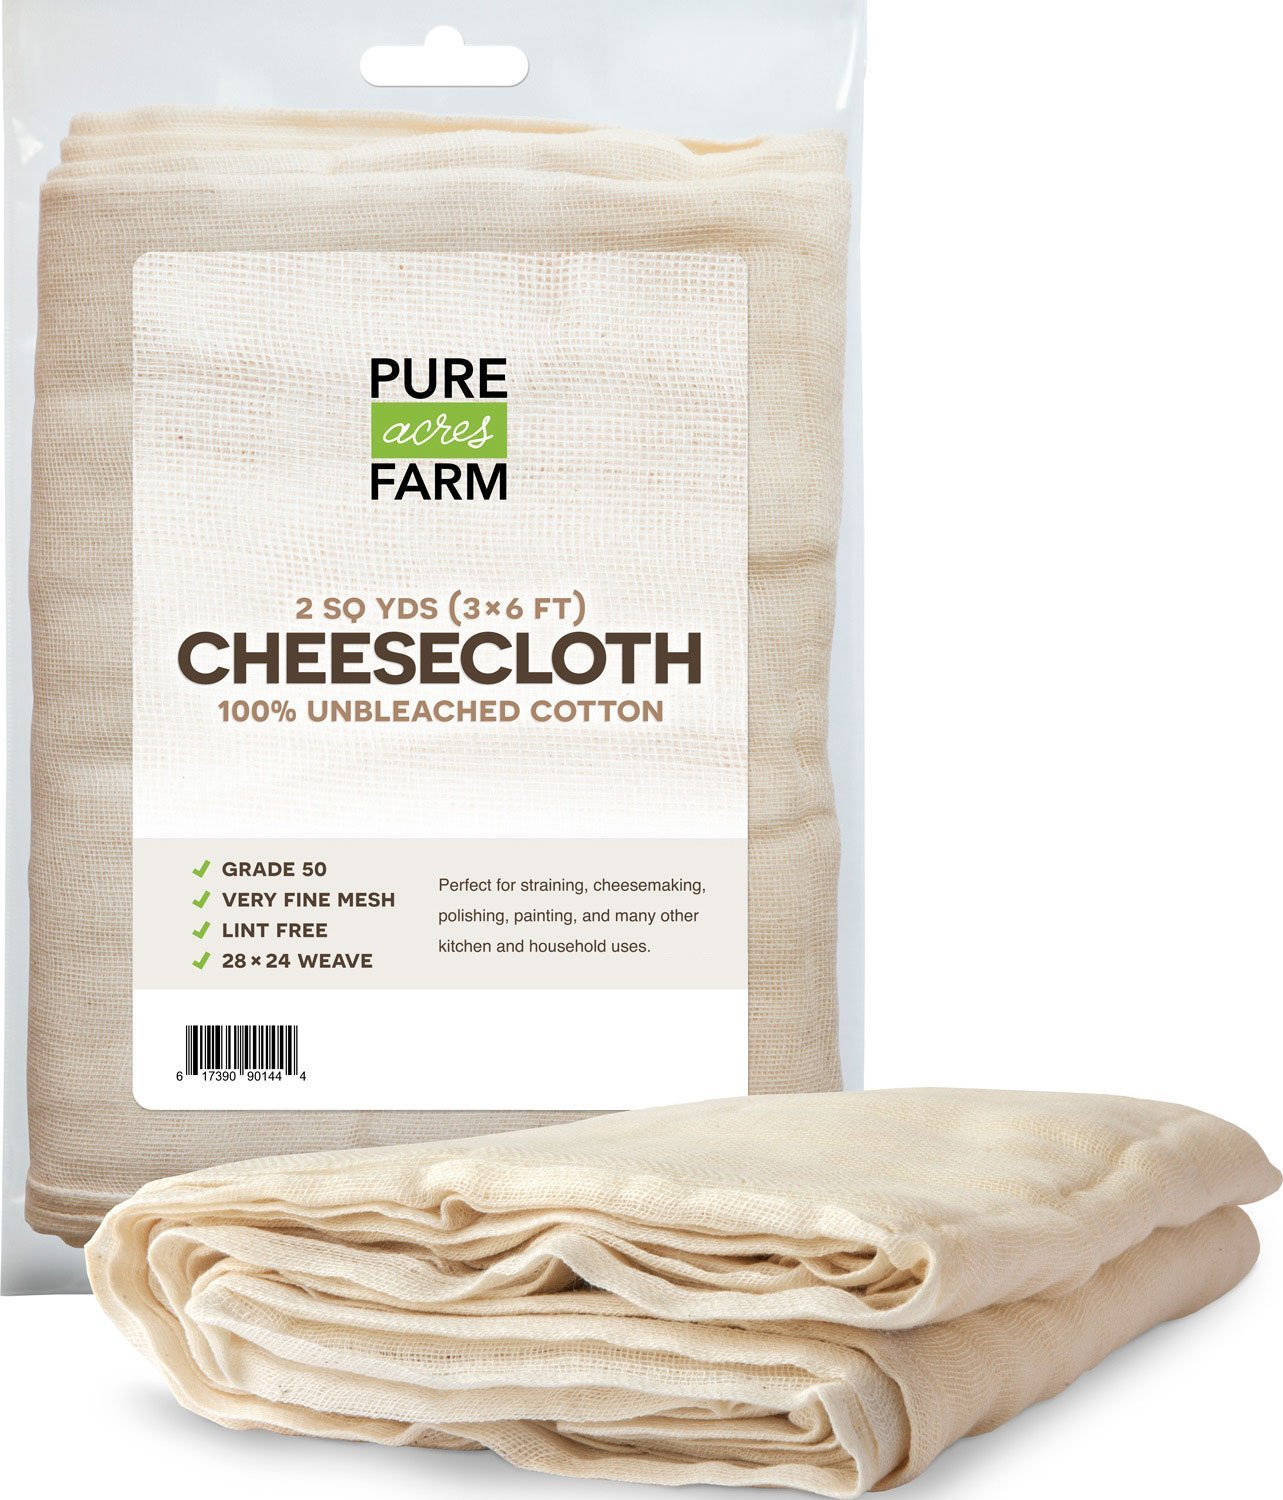 Pure Grade 50 100% Unbleached Cotton Cheesecloth Strain, 2 Yards (18 Sq Feet) Pure-Acres-Farm 2yd-cheesecloth